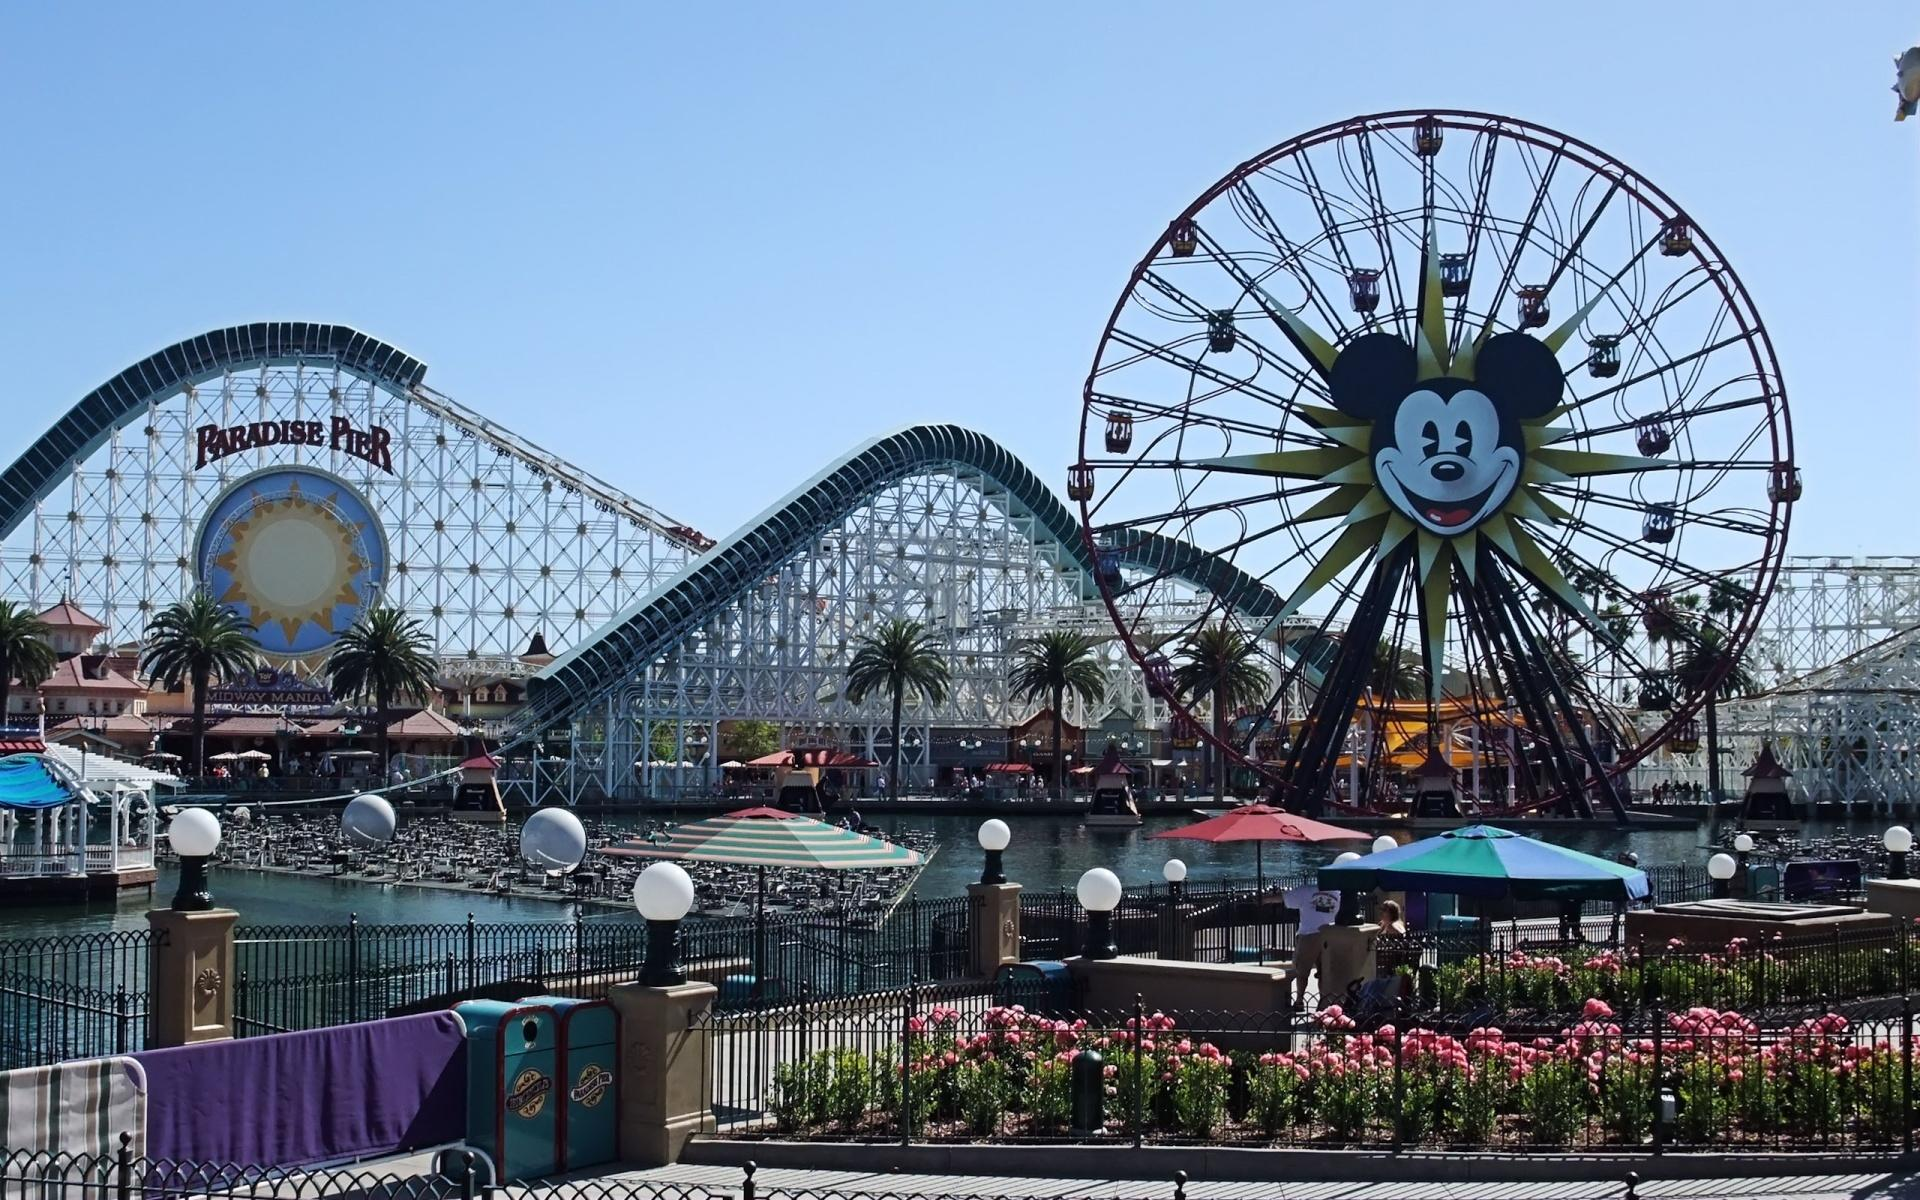 Wallpapers city, attraction, park, paradise pier, disneyland